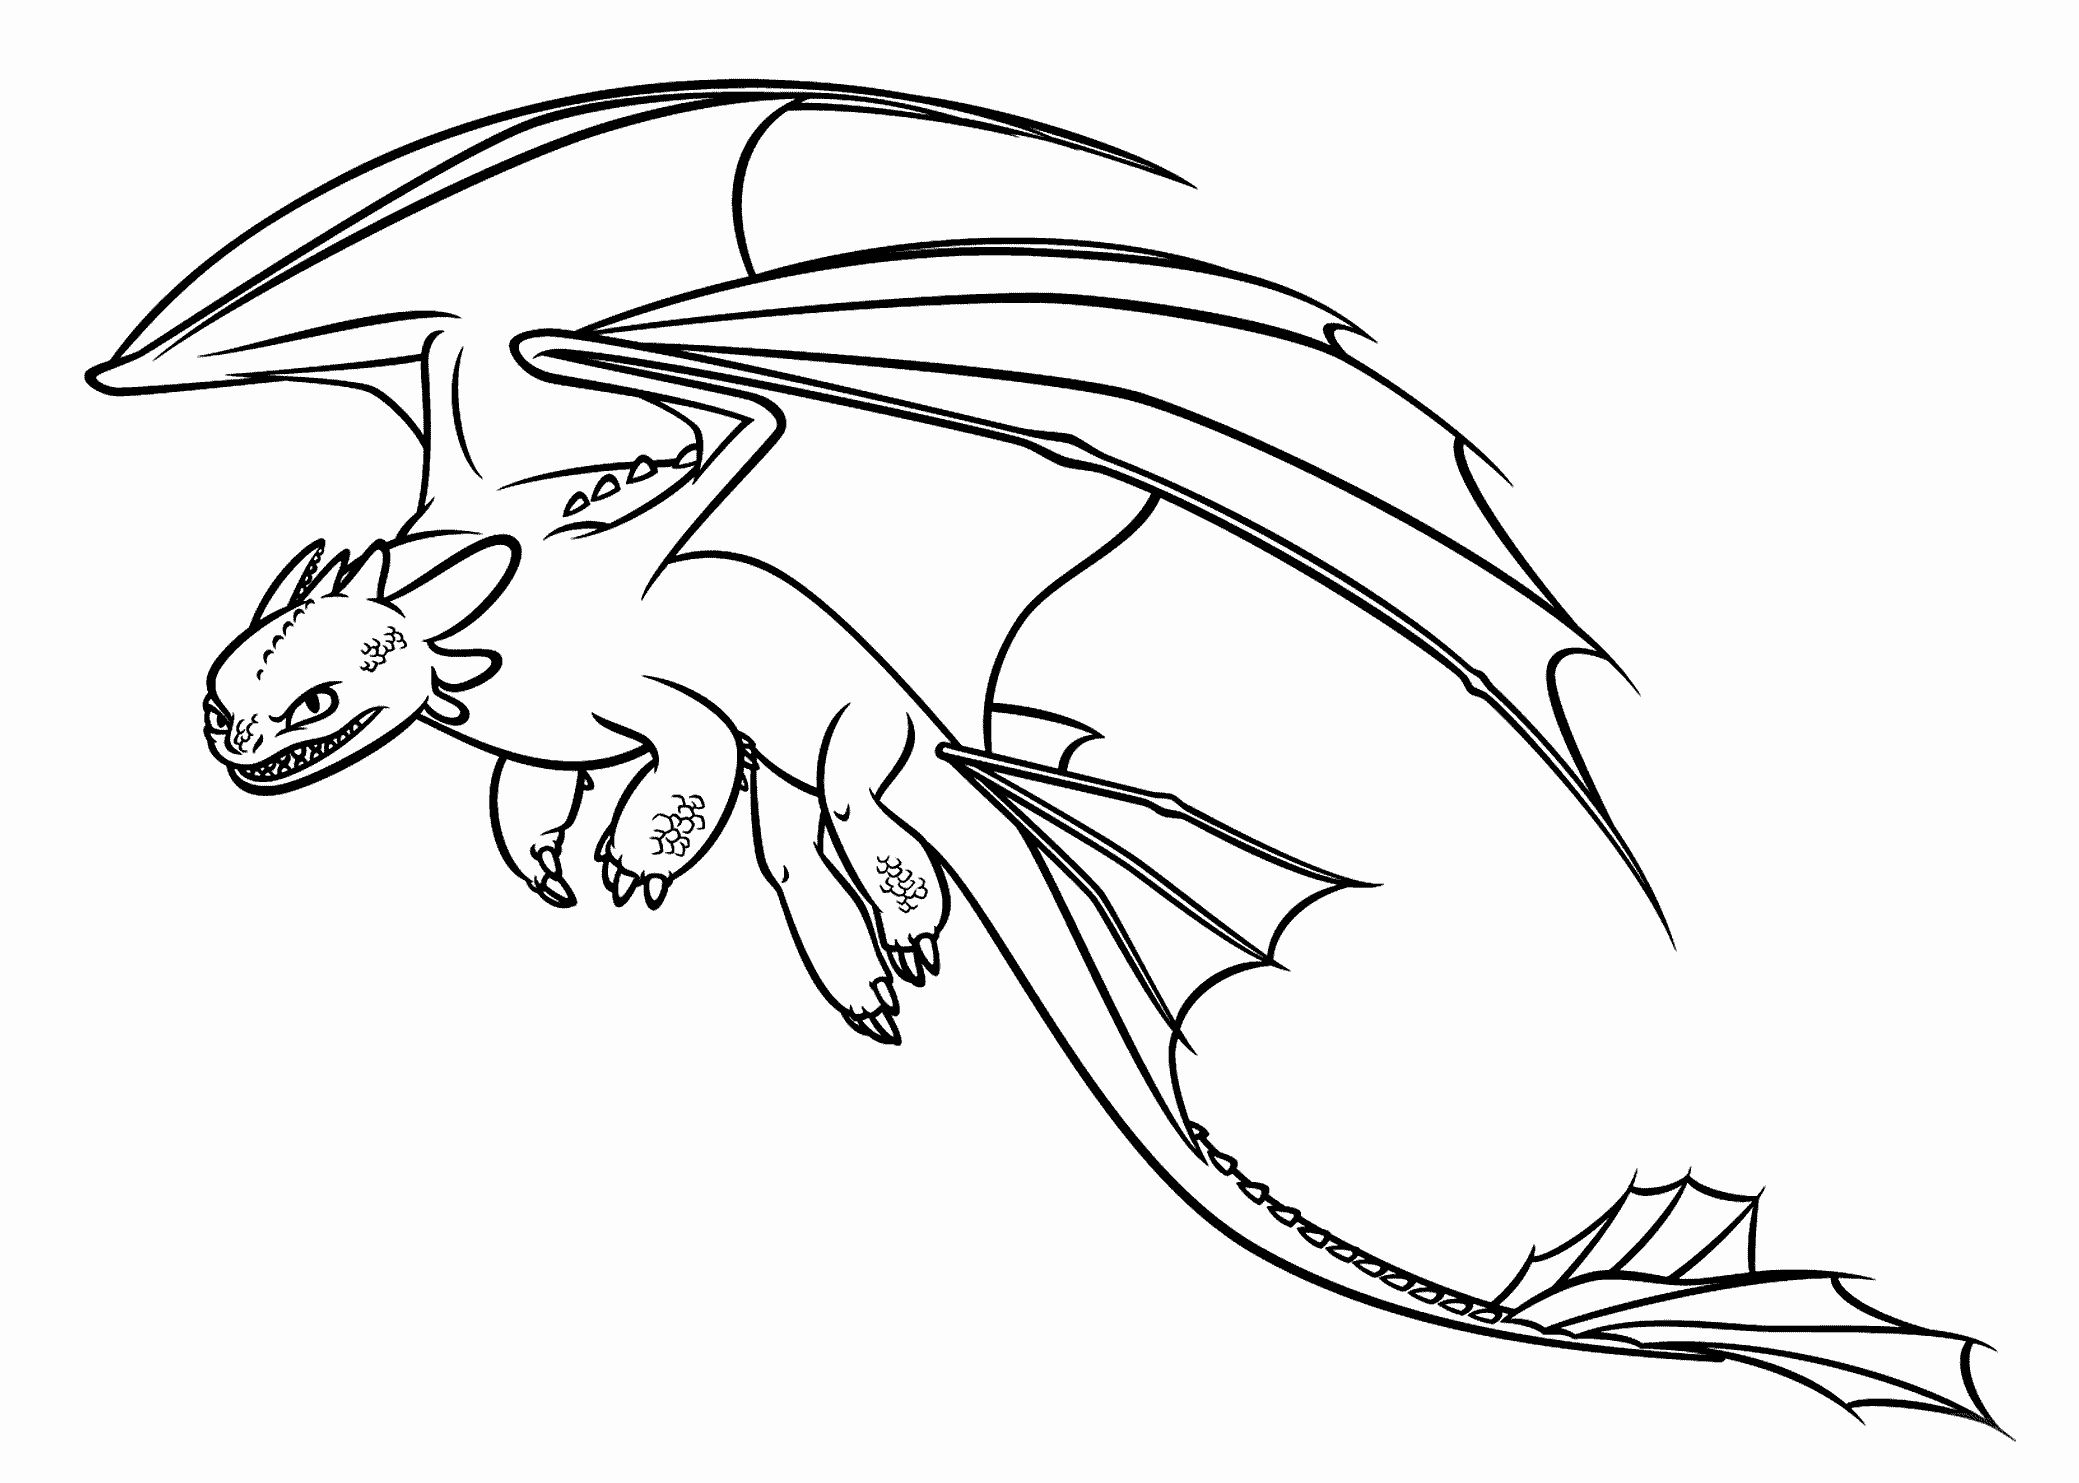 Baby Dragon Coloring Page Beautiful Baby Dragon Flying Coloring Page Coloring Home Dragon Coloring Page Dragon Coloring Pages Toothless Coloring Pages